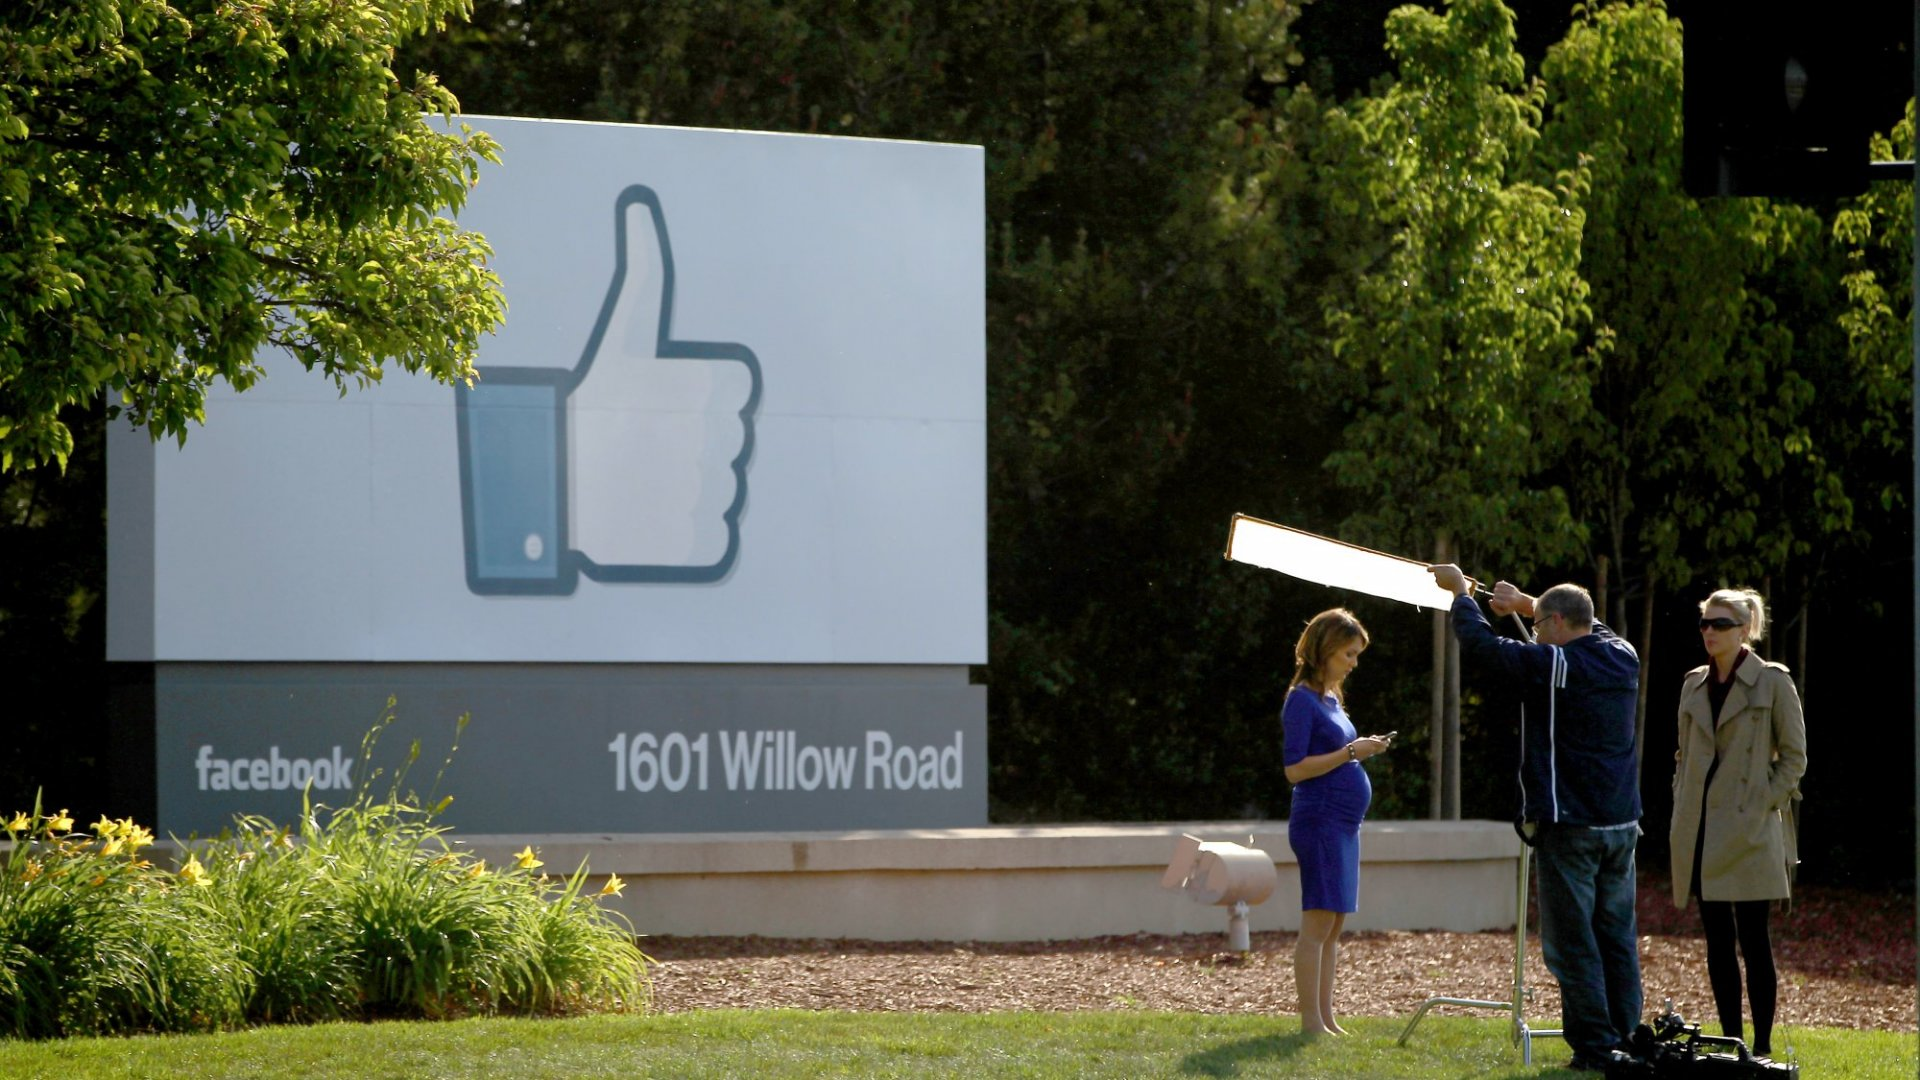 Facebook Tops Wall Street's Fourth Quarter Forecasts